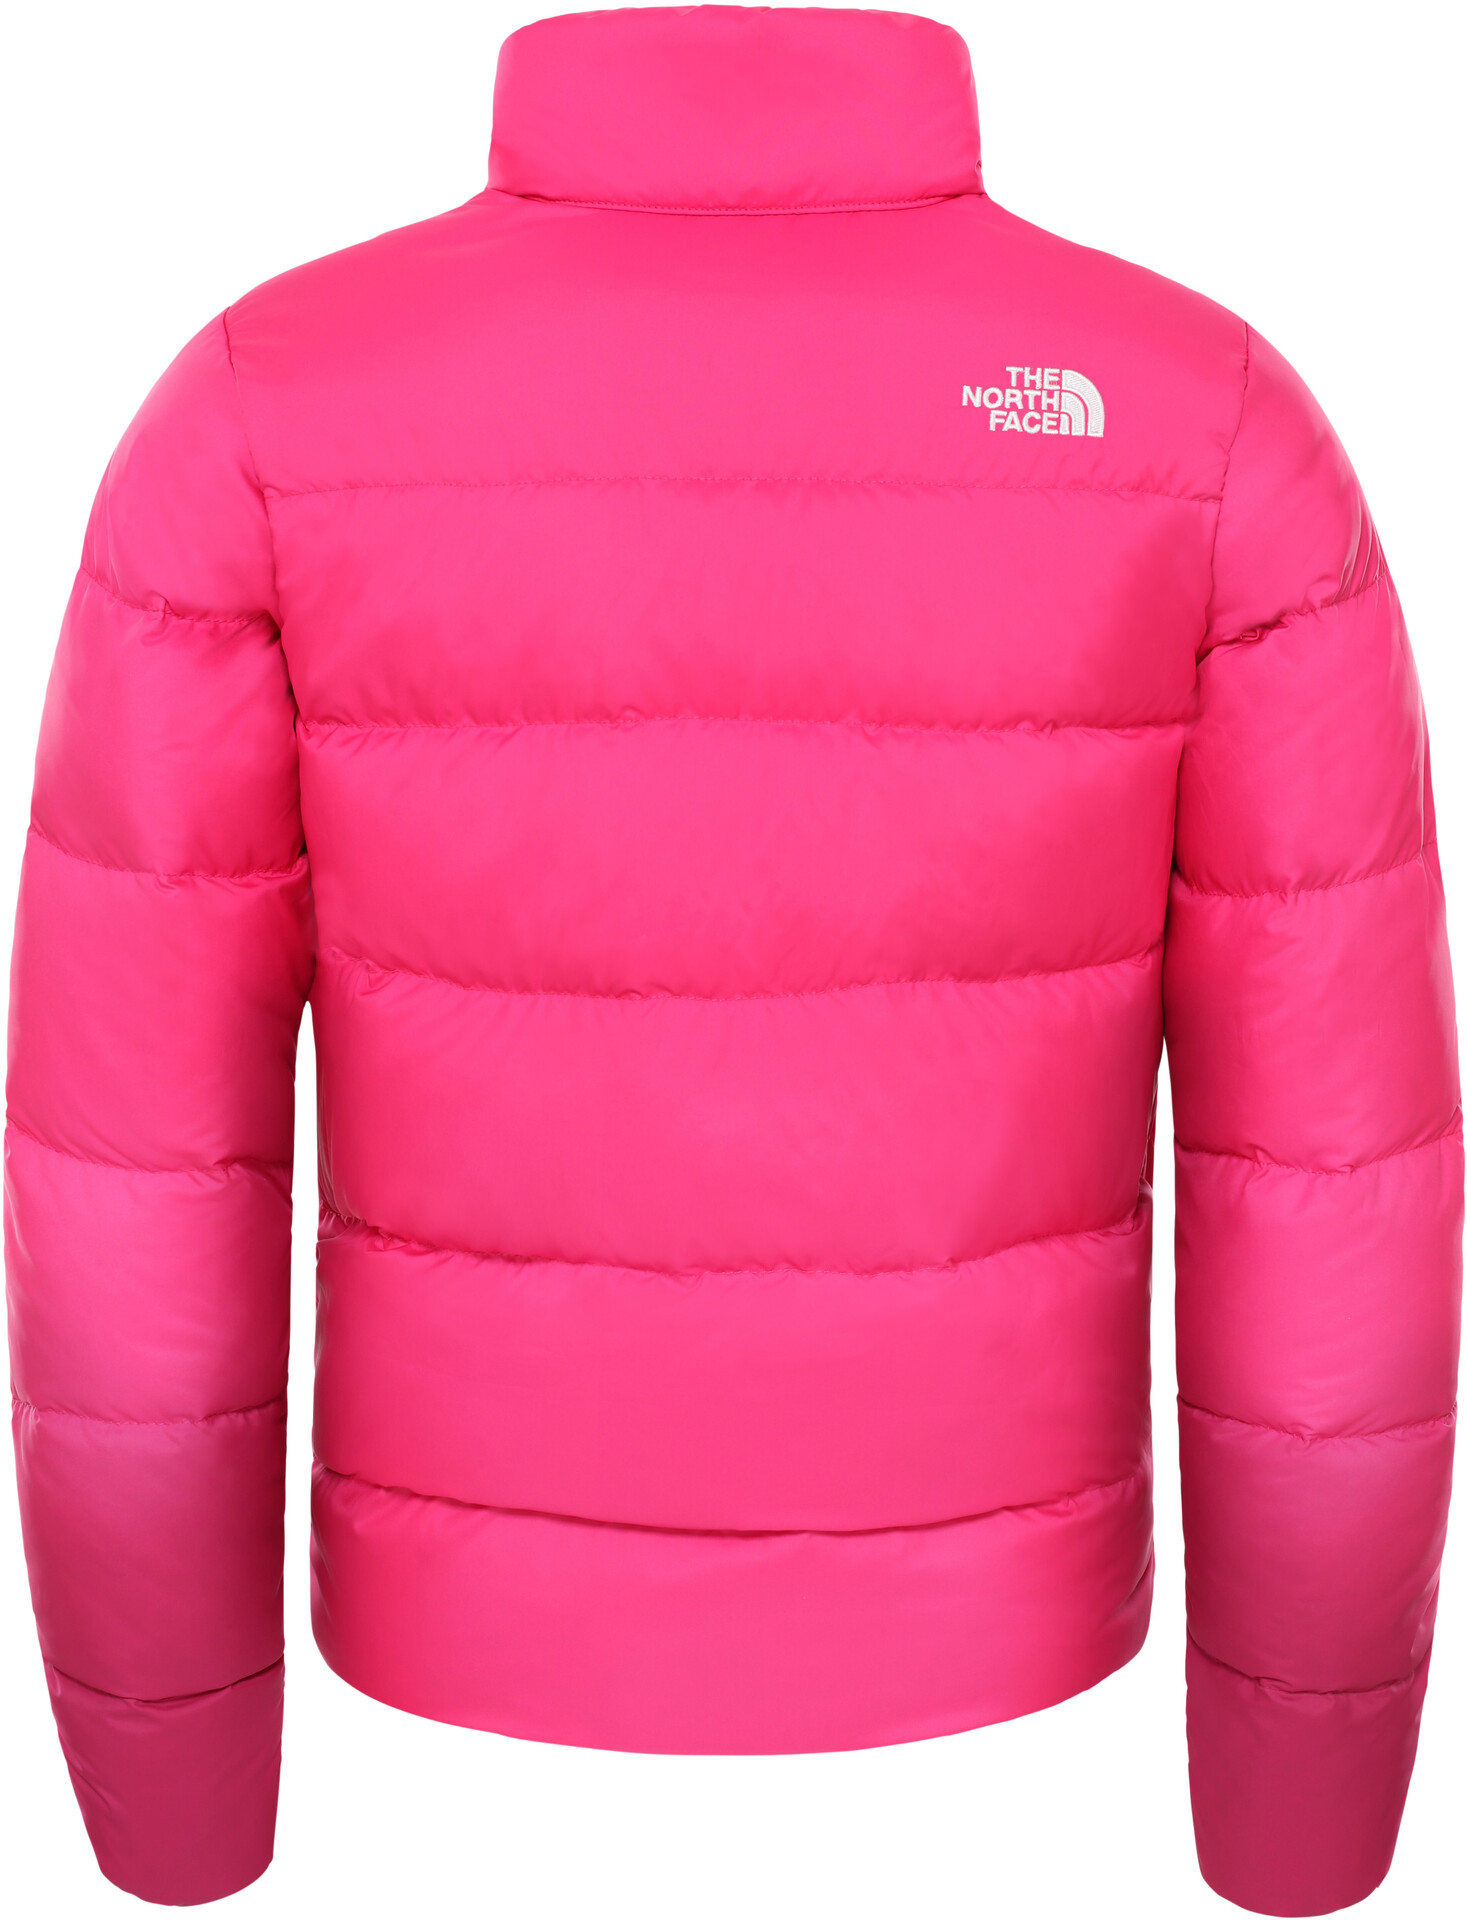 The North Face Andes Giacca piumino Ragazza, mr.pink su Addnature SBVK8